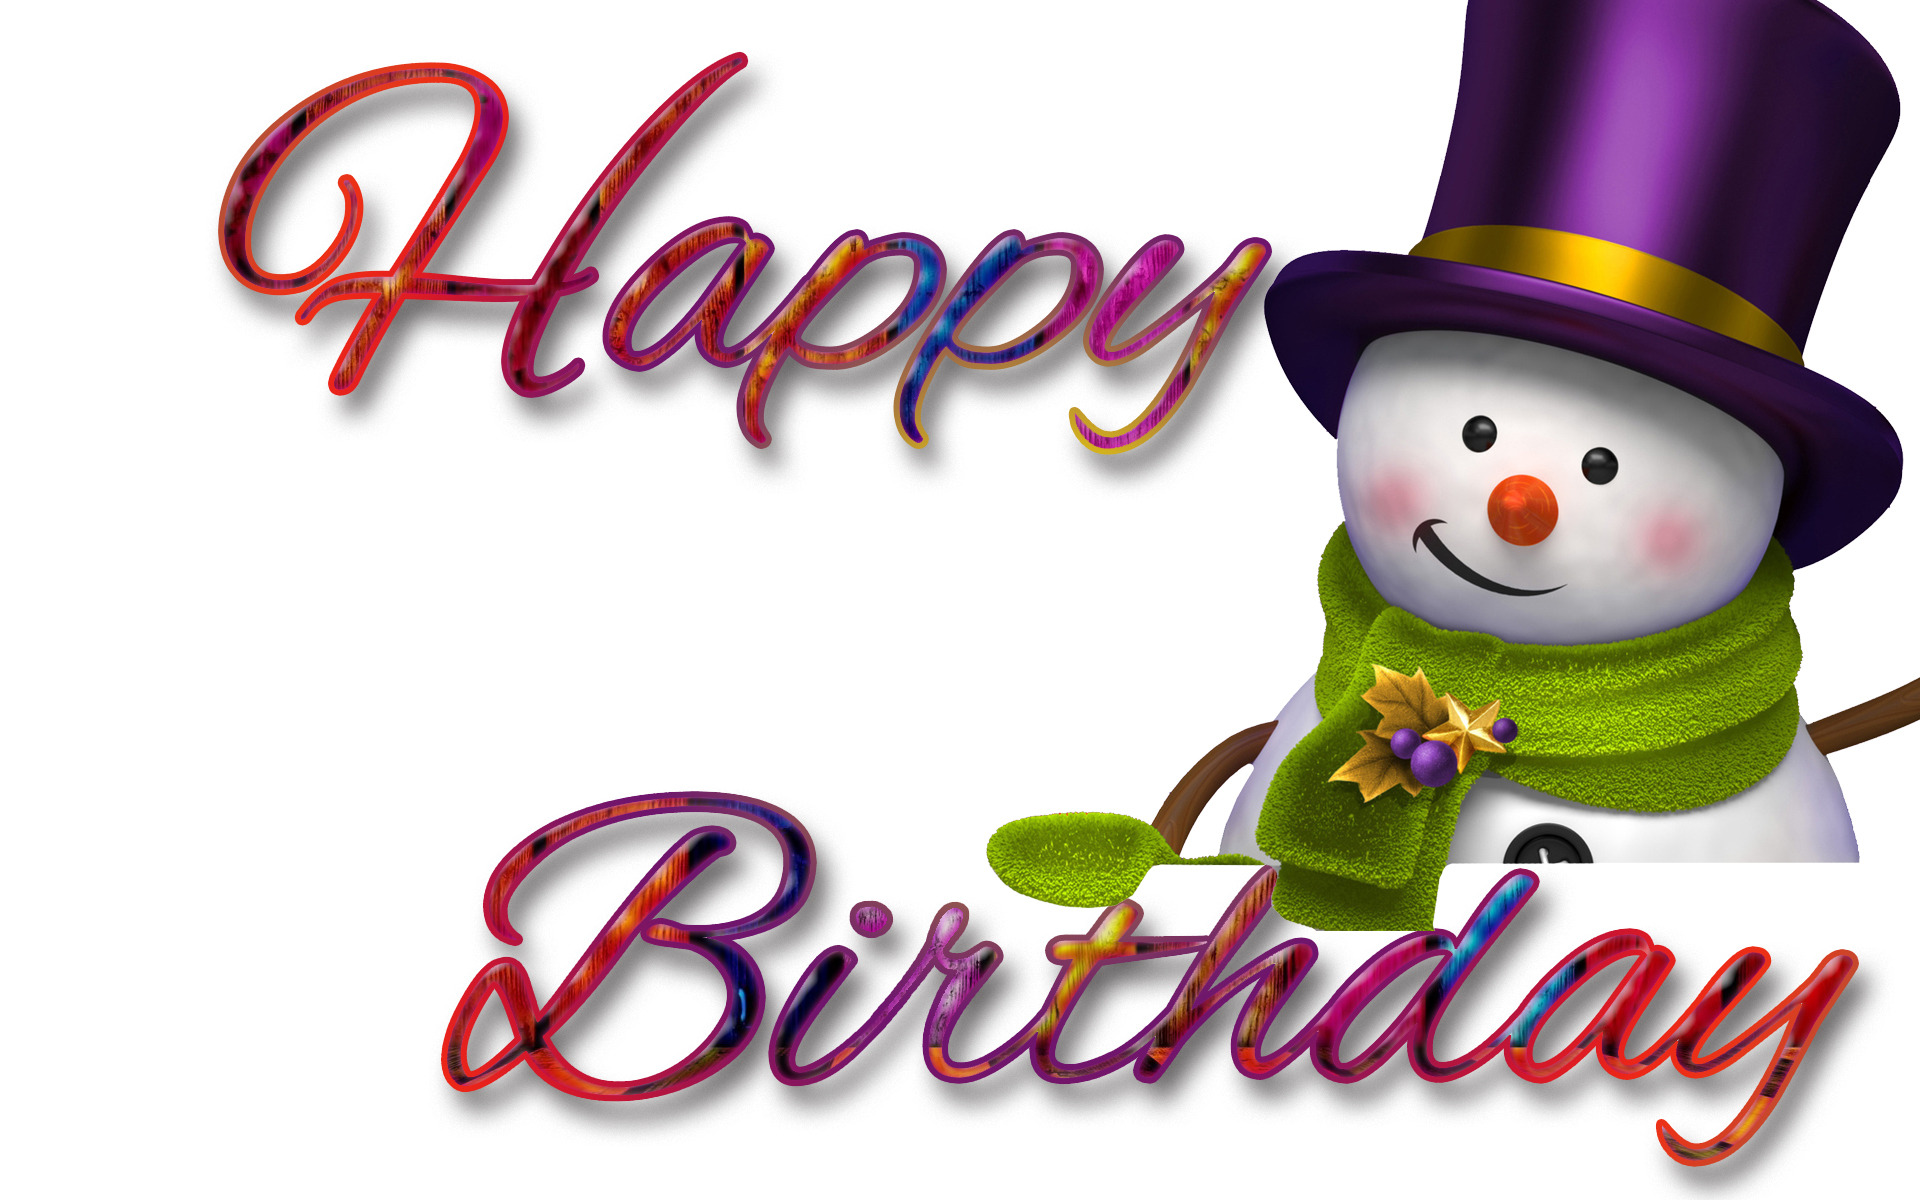 christmas birthday wishes clip art ; happy-birthday-cake-with-name-edit-for-facebook-happy-birthday-holiday-hd-wallpaper-1920x1200-1152